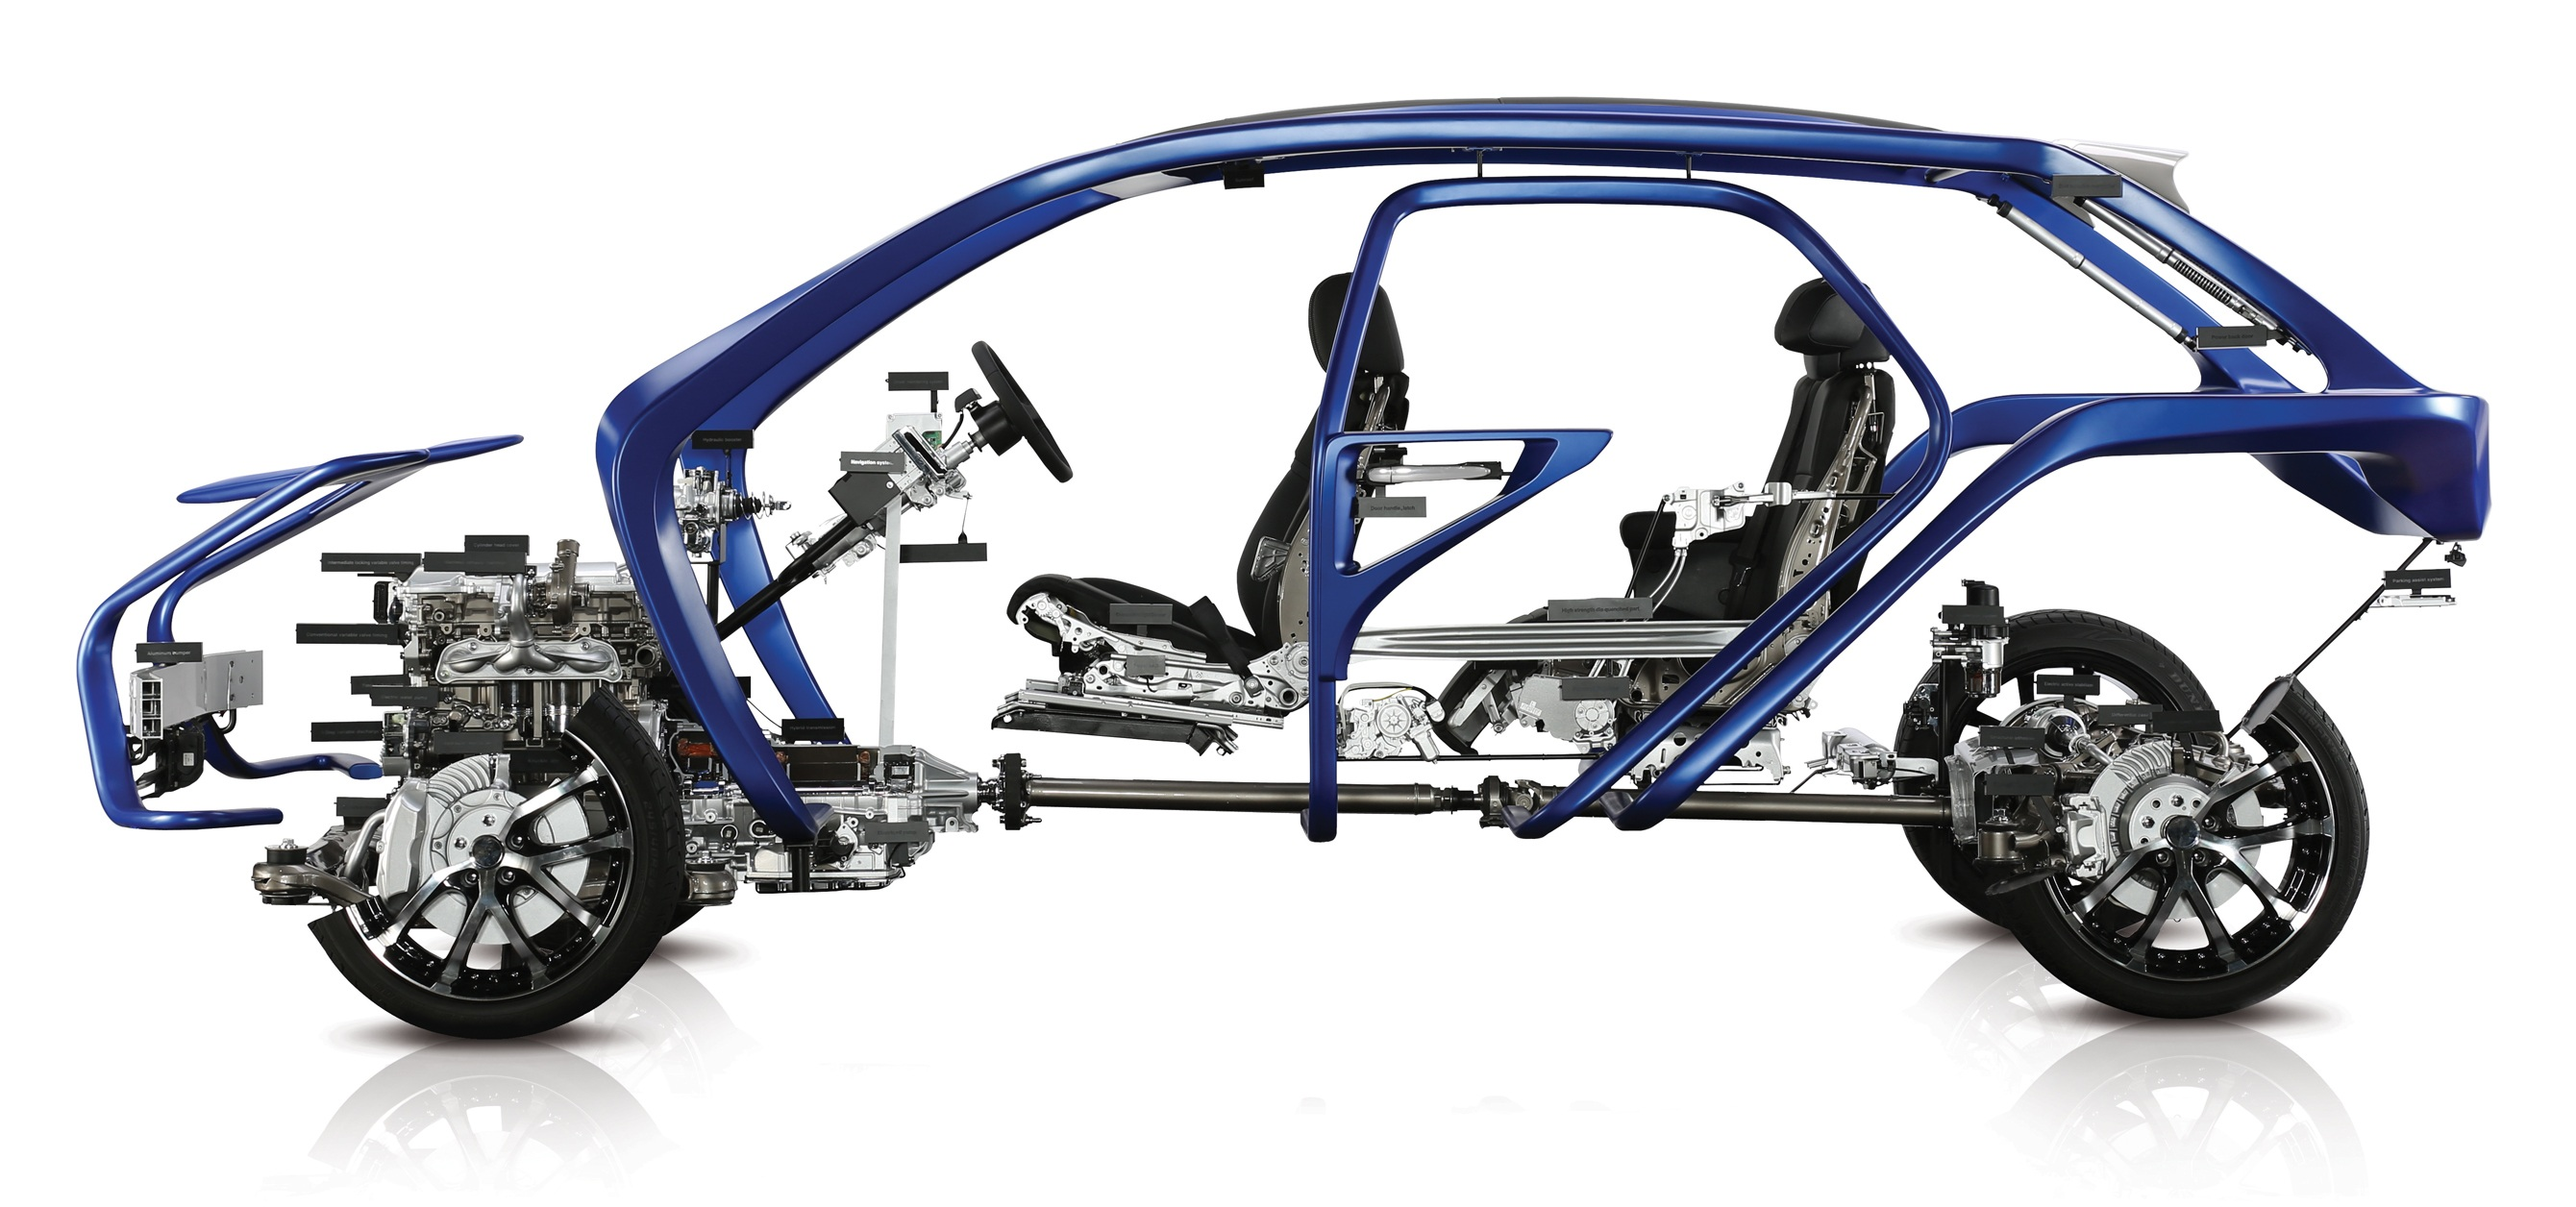 Automotive Chassis Systems Market to Reach USD97 Billion by 2022